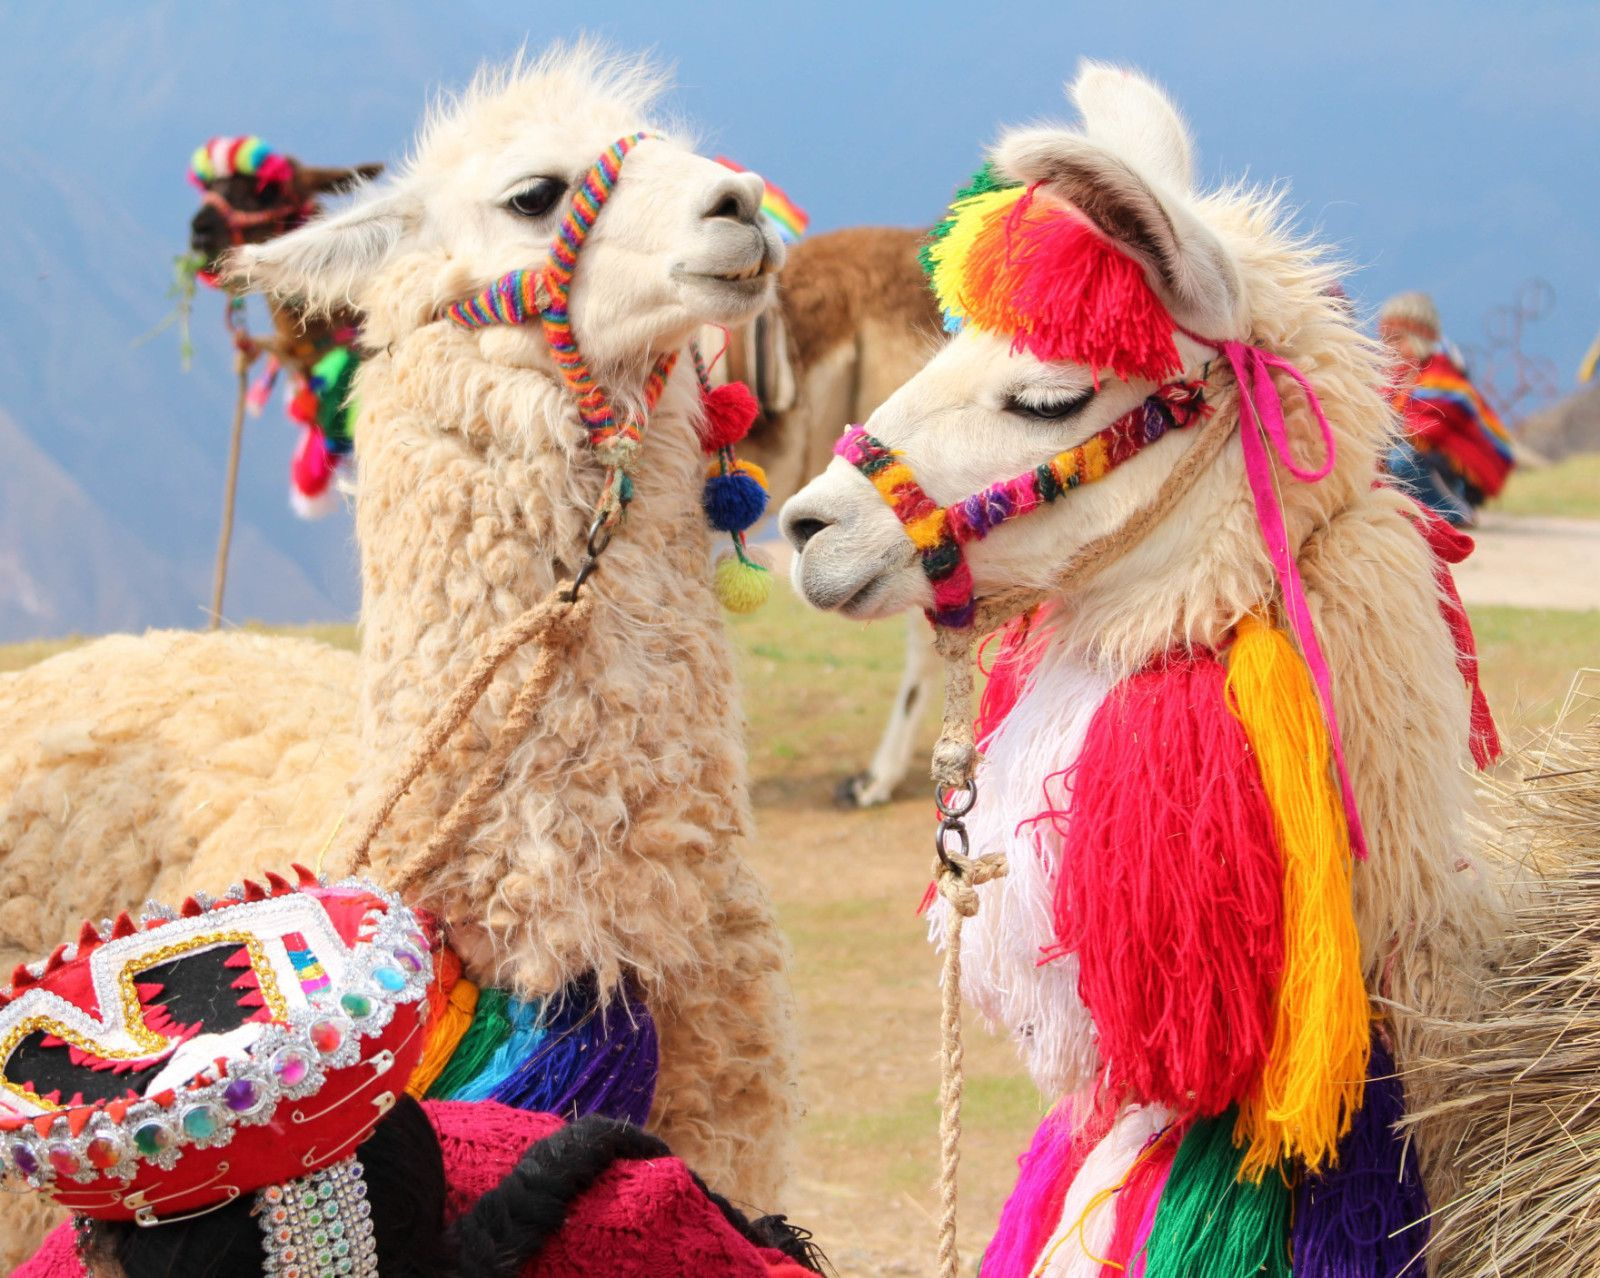 Do You Know Where In The World You Can Find Llamas This Stylish